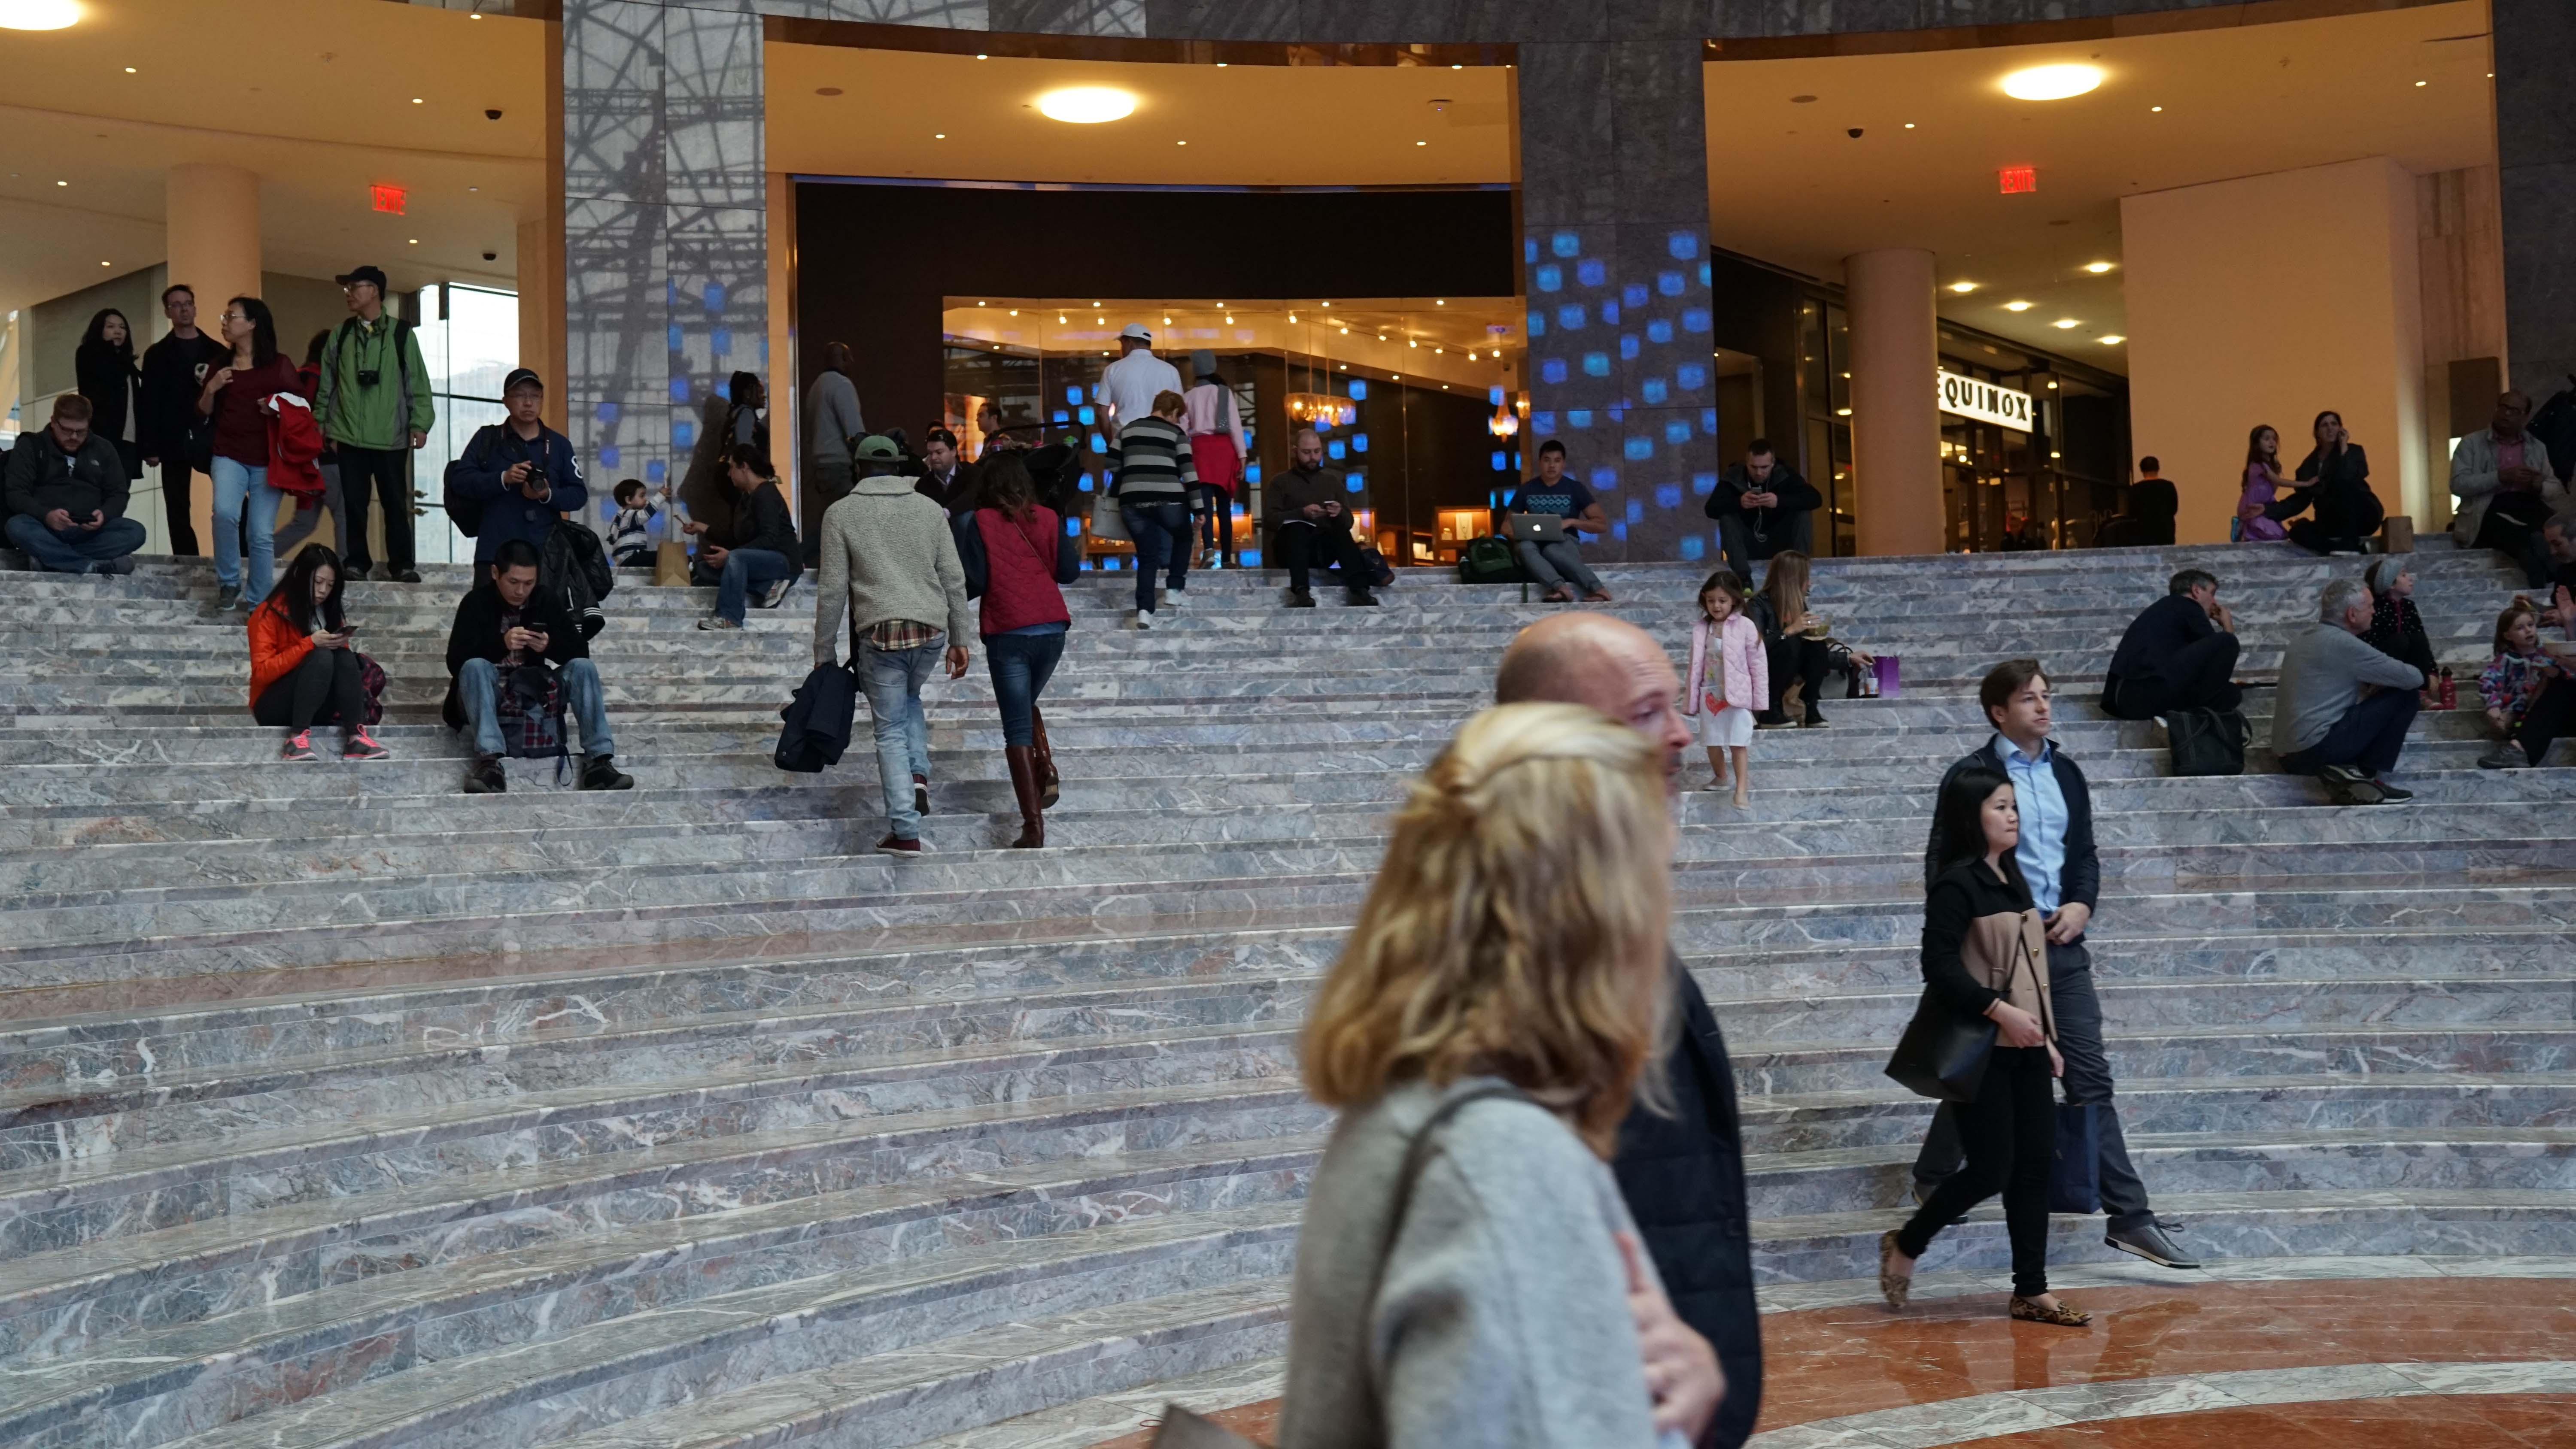 People on marble stairs winter garden 12-12-2015